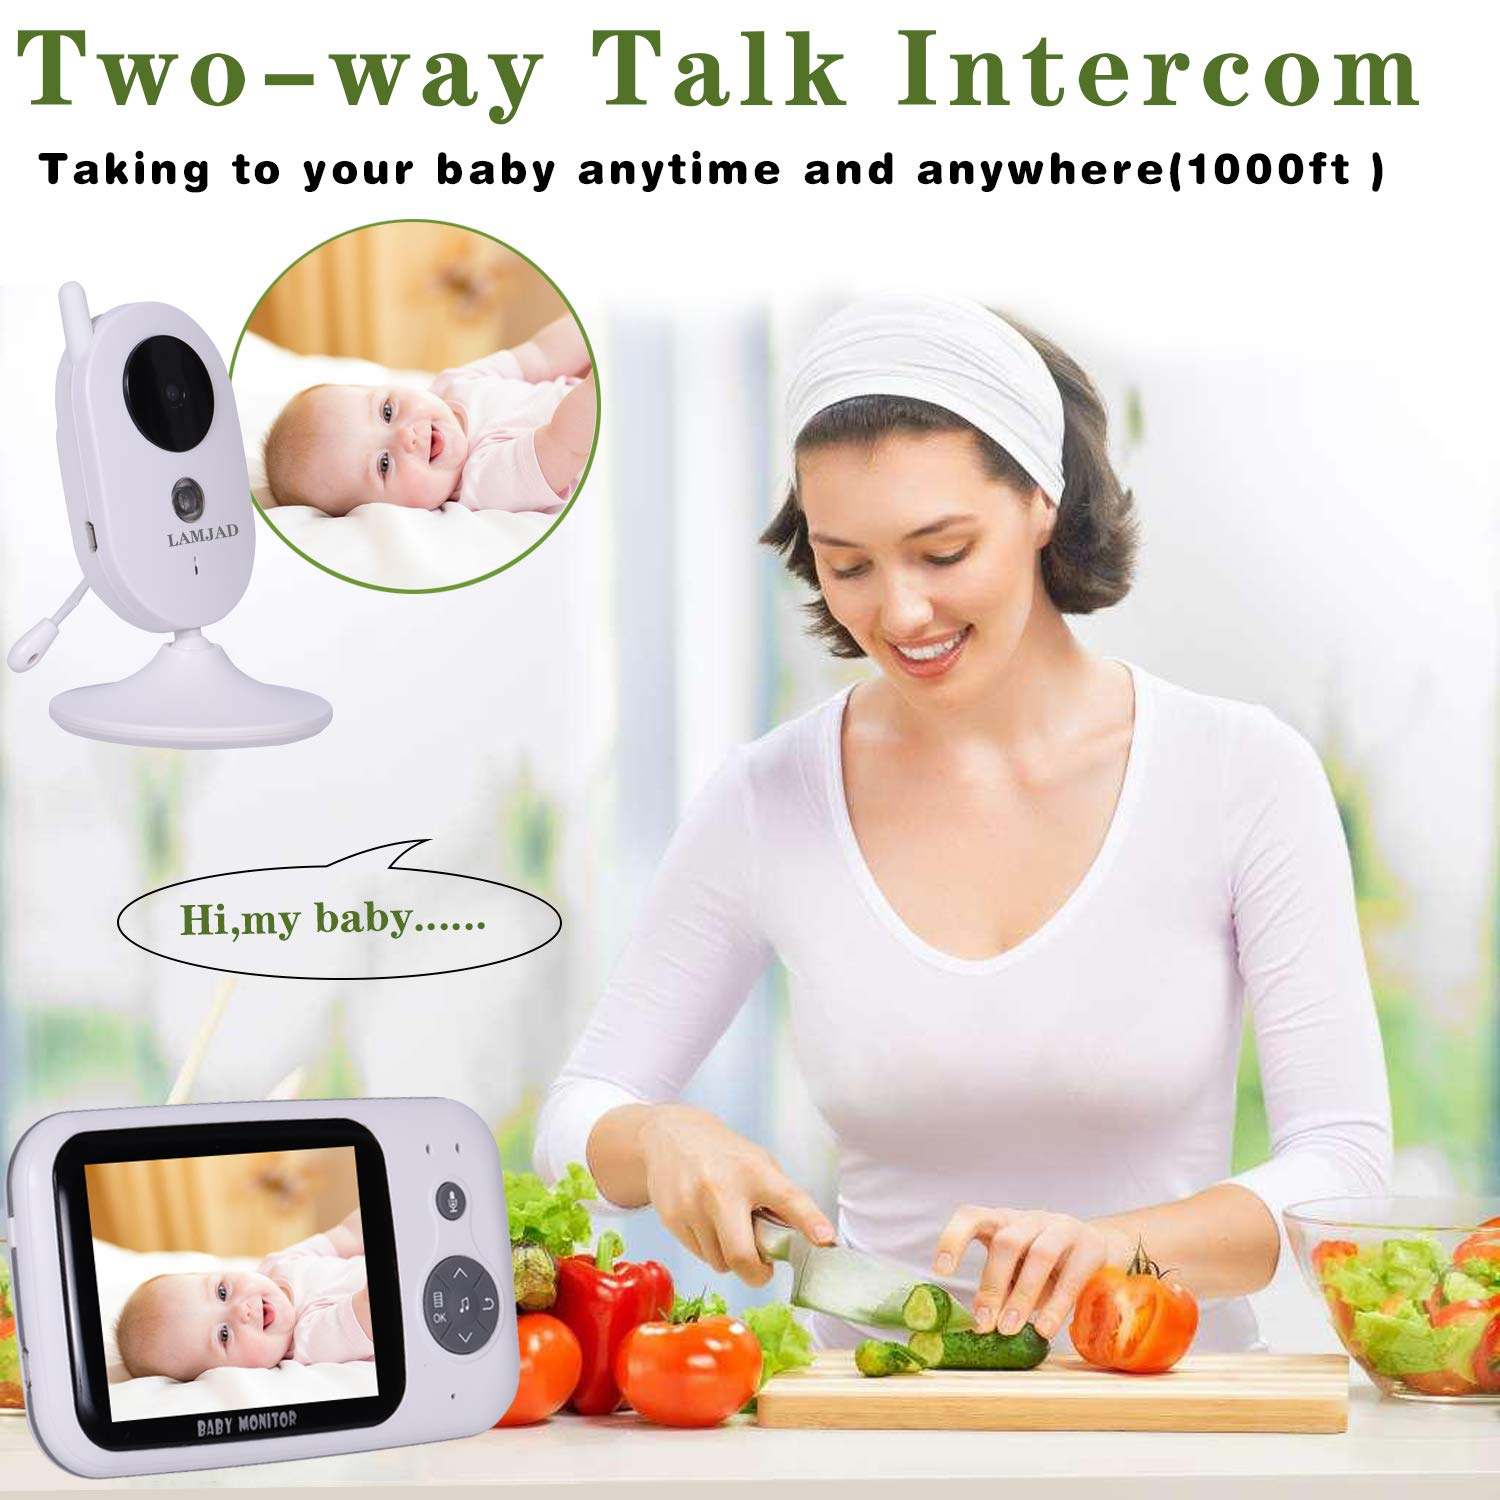 Baby Monitor, LAMJAD 3.2 Video Baby Monitor with Camera and Audio, Auto Night Vision,Two-Way Talk, Temperature Monitor, VOX Mode, 8 Lullabies, 960ft Range and Long Battery Life